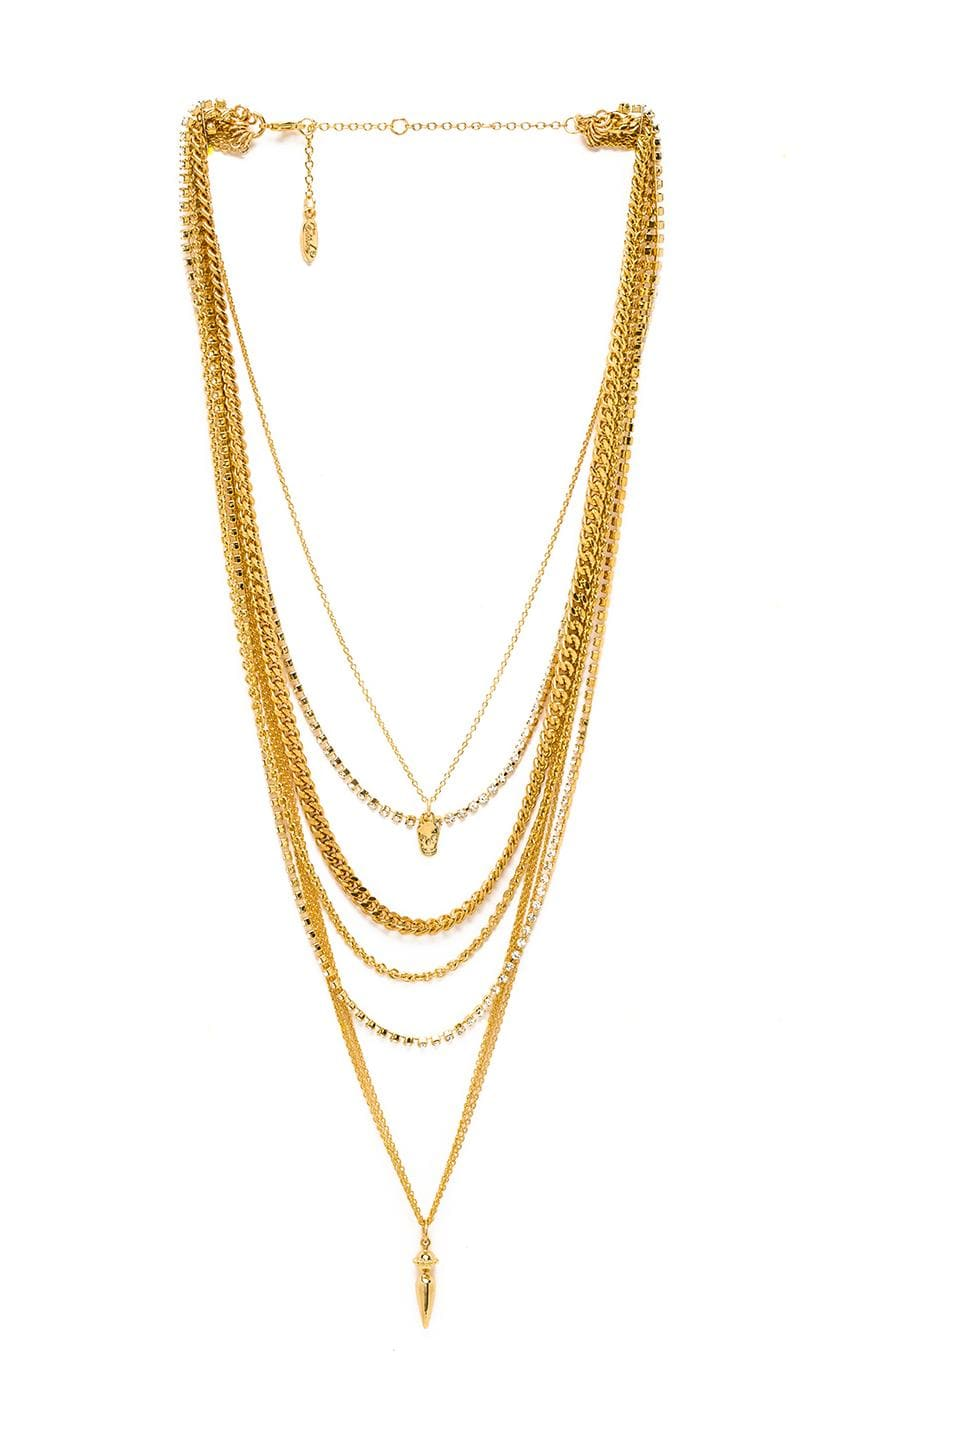 Ettika Spike and Skull Layered Necklace in Gold